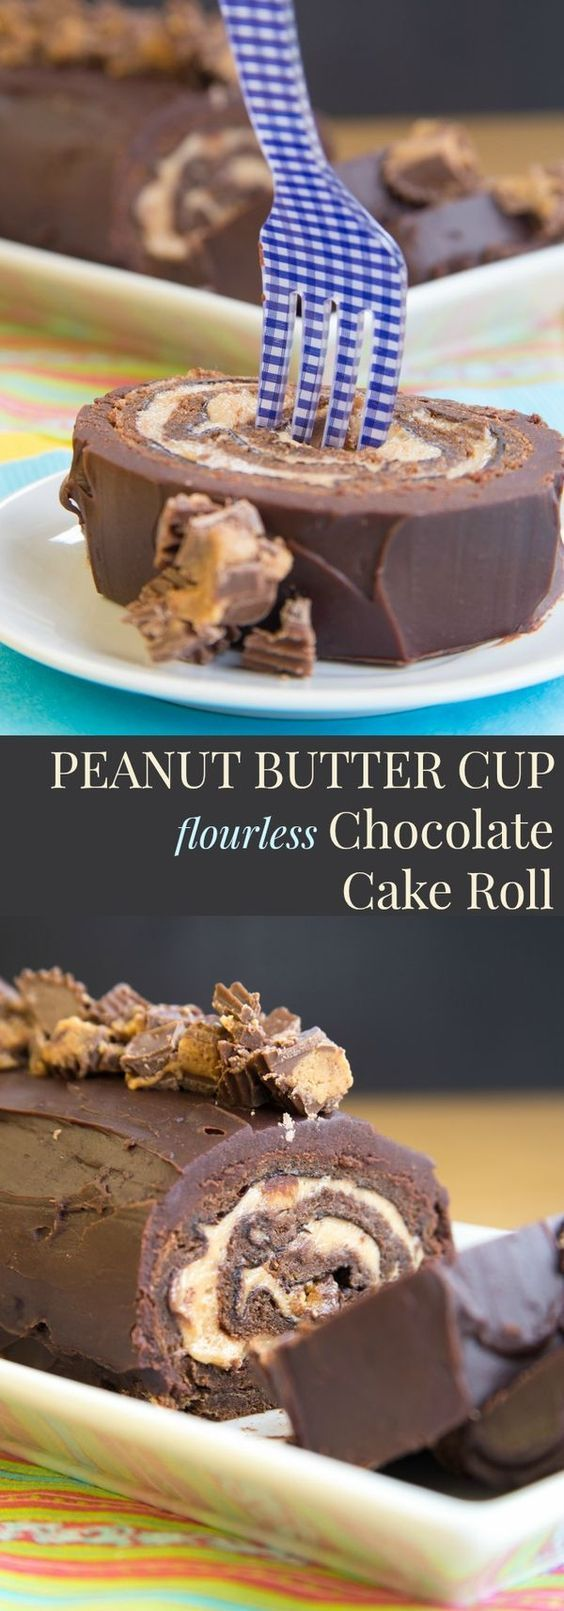 Peanut Butter Cup Flourless Chocolate Cake Roll - fill a tender sponge cake with…